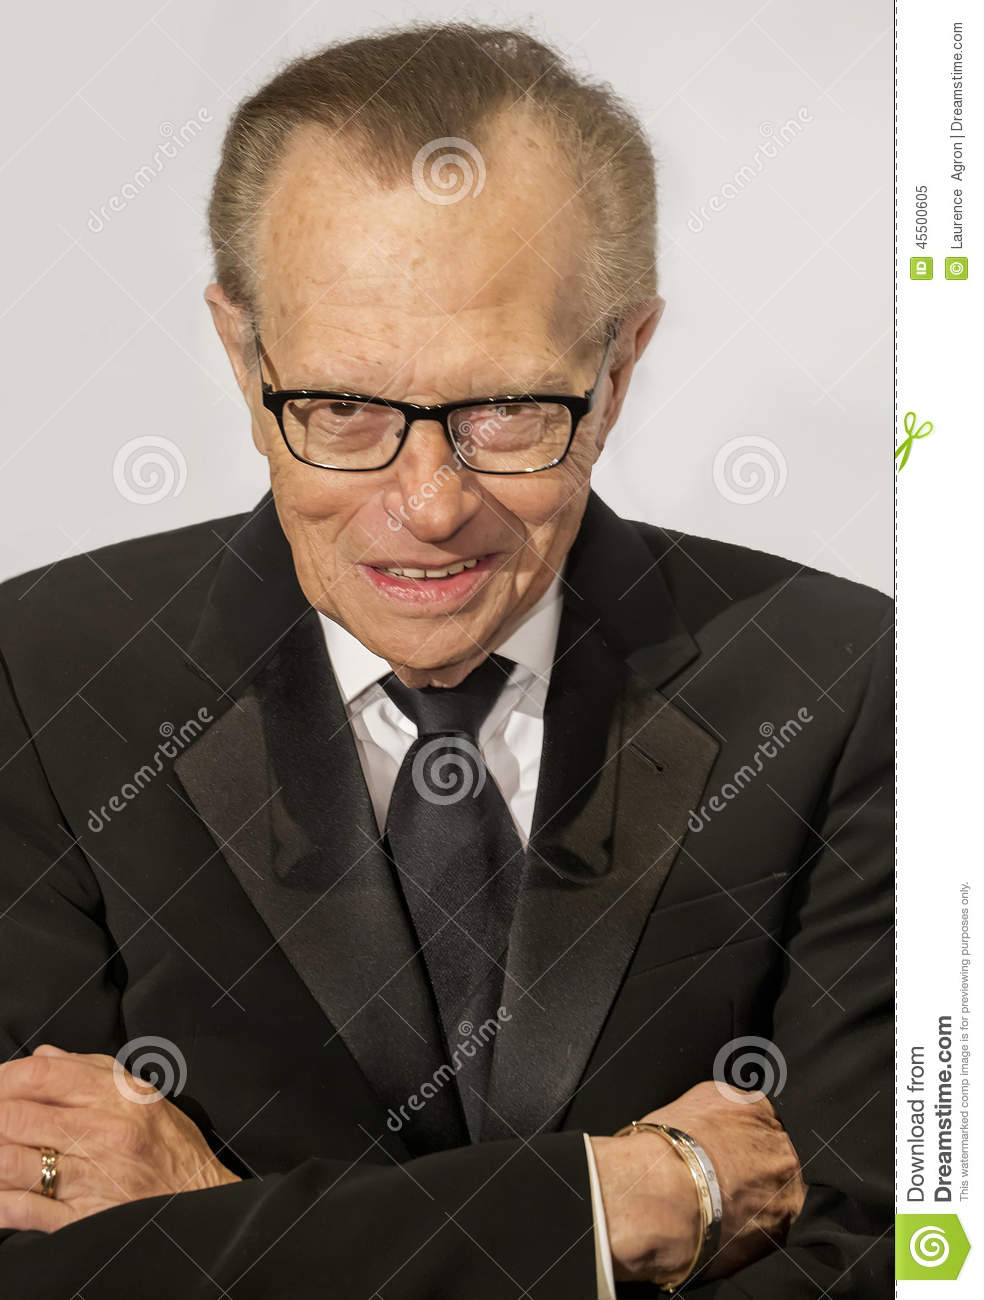 <b>Larry King</b> Redaktionelles Bild - larry-king-45500605